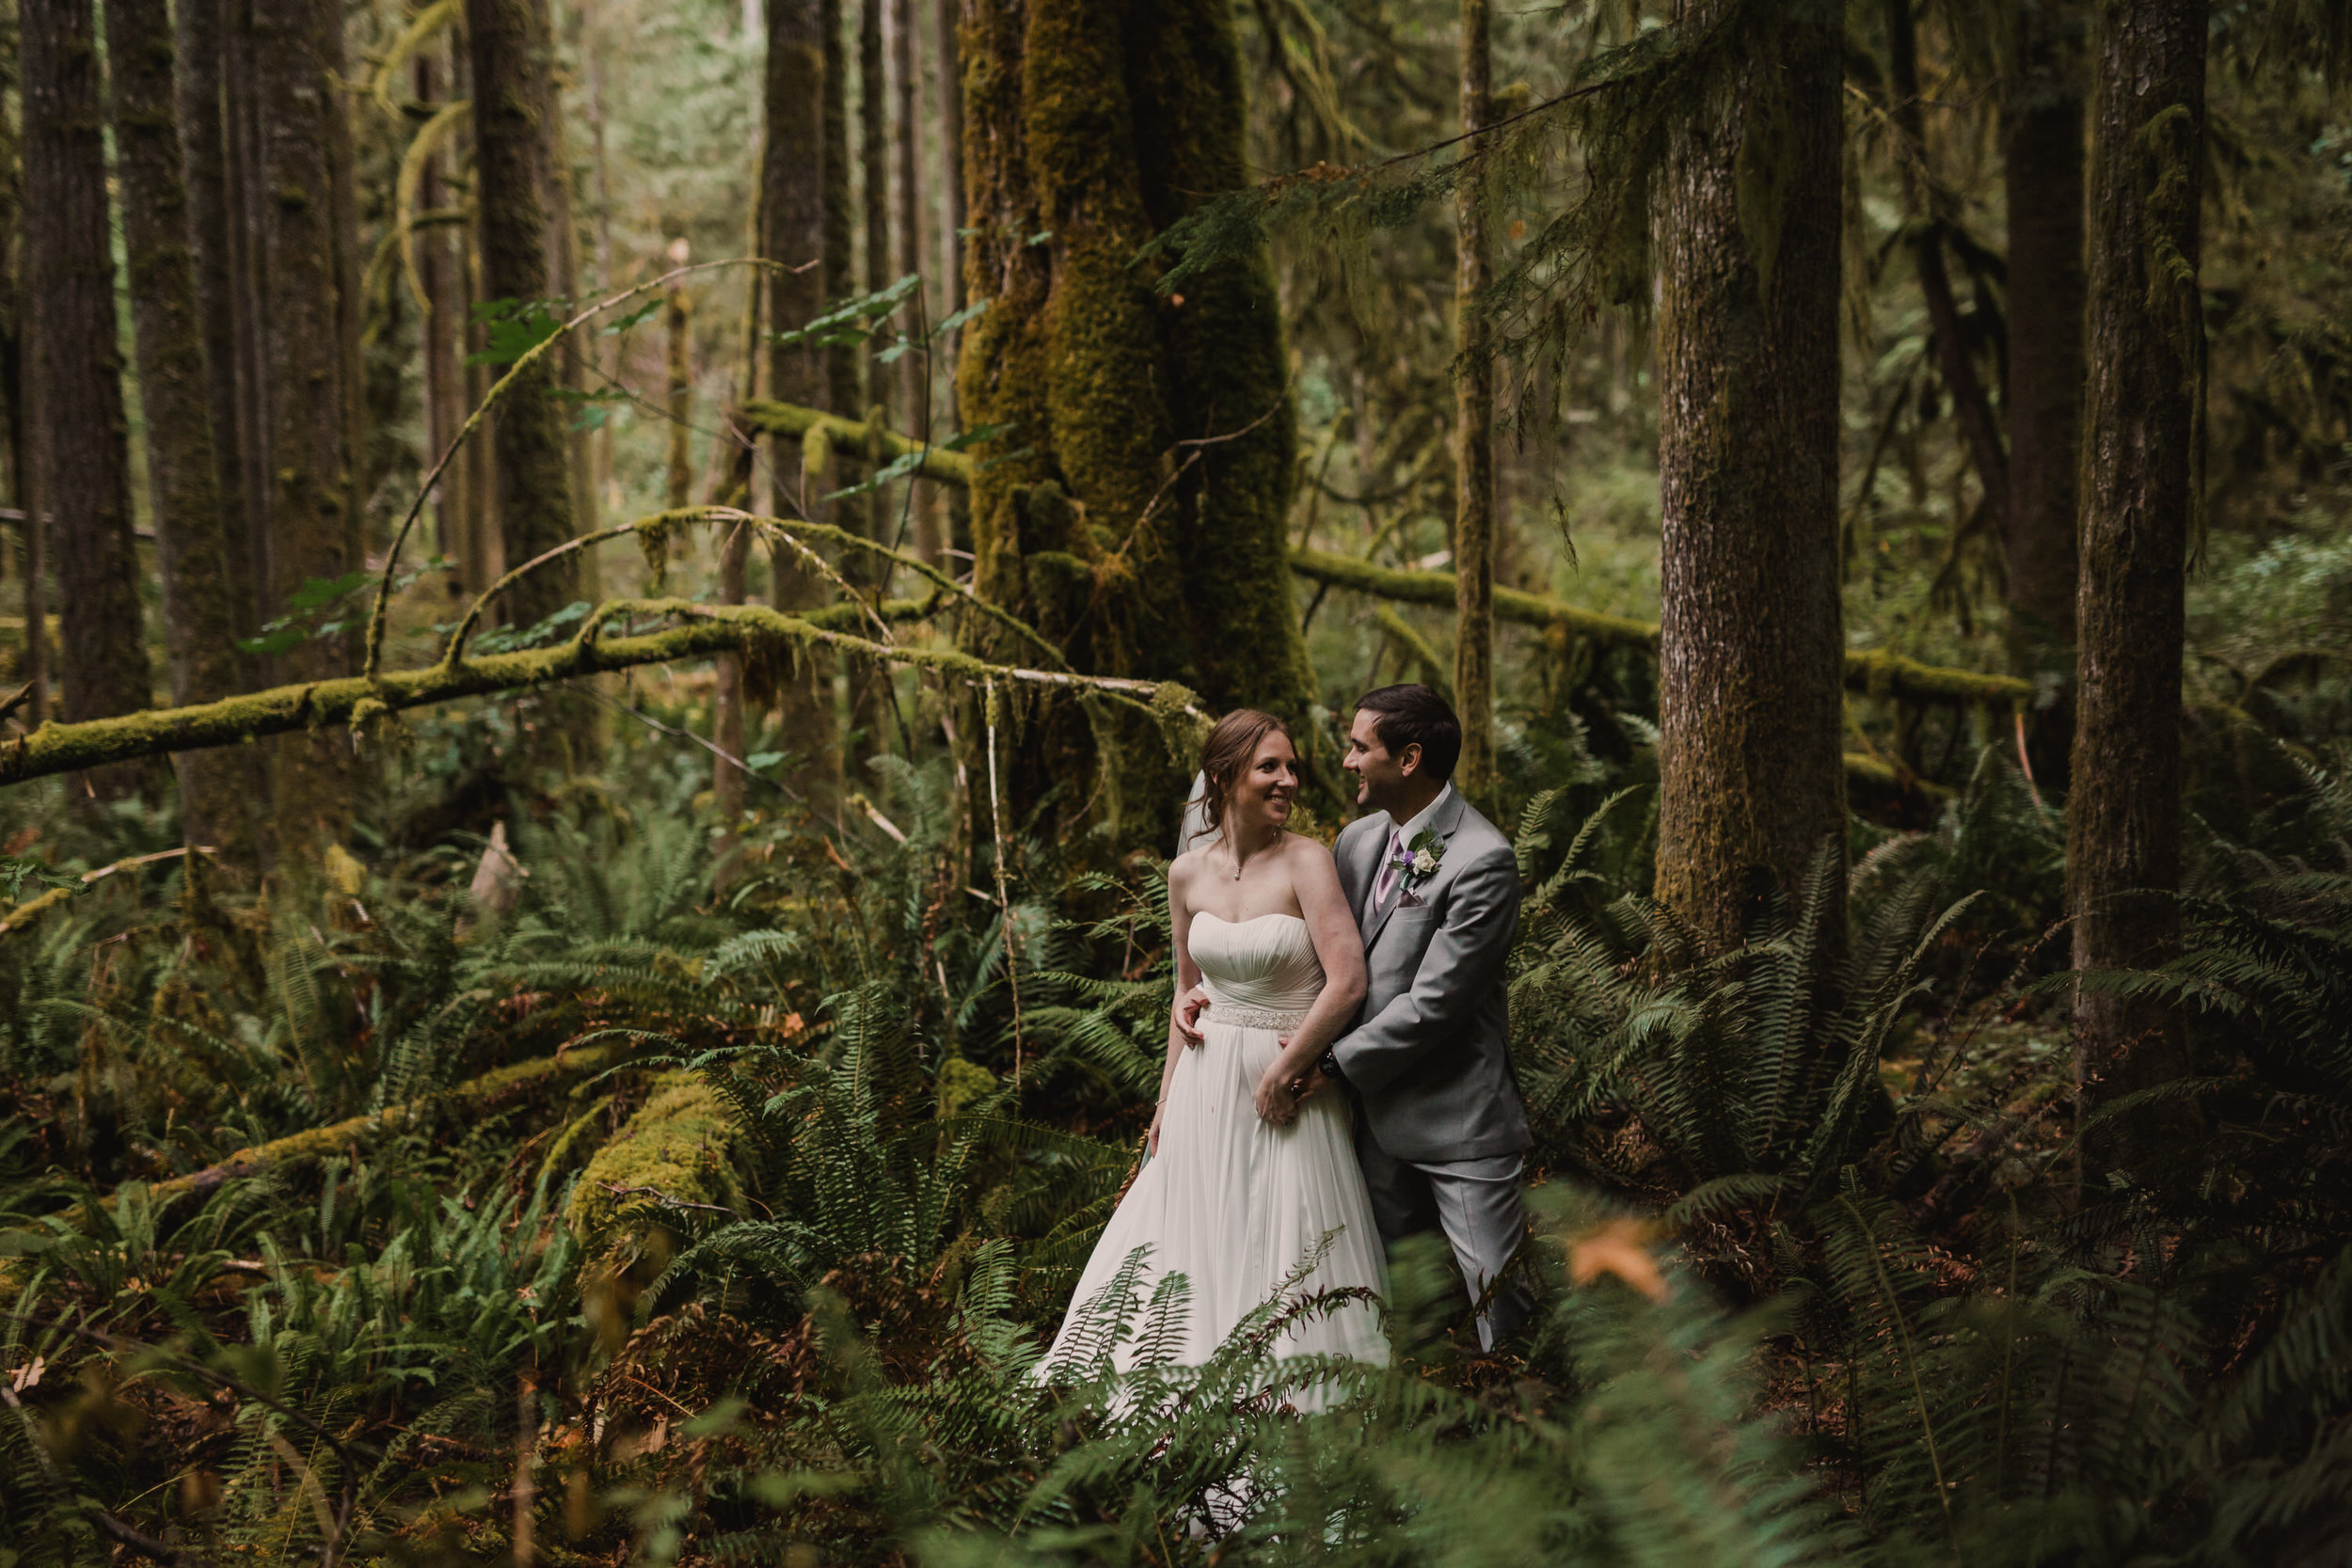 West Coast Wilderness Lodge Wedding Photos - Vancouver Wedding Photographer & Videographer - Sunshine Coast Wedding Photos - Sunshine Coast Wedding Photographer - Jennifer Picard Photography - IMG_7030.jpg